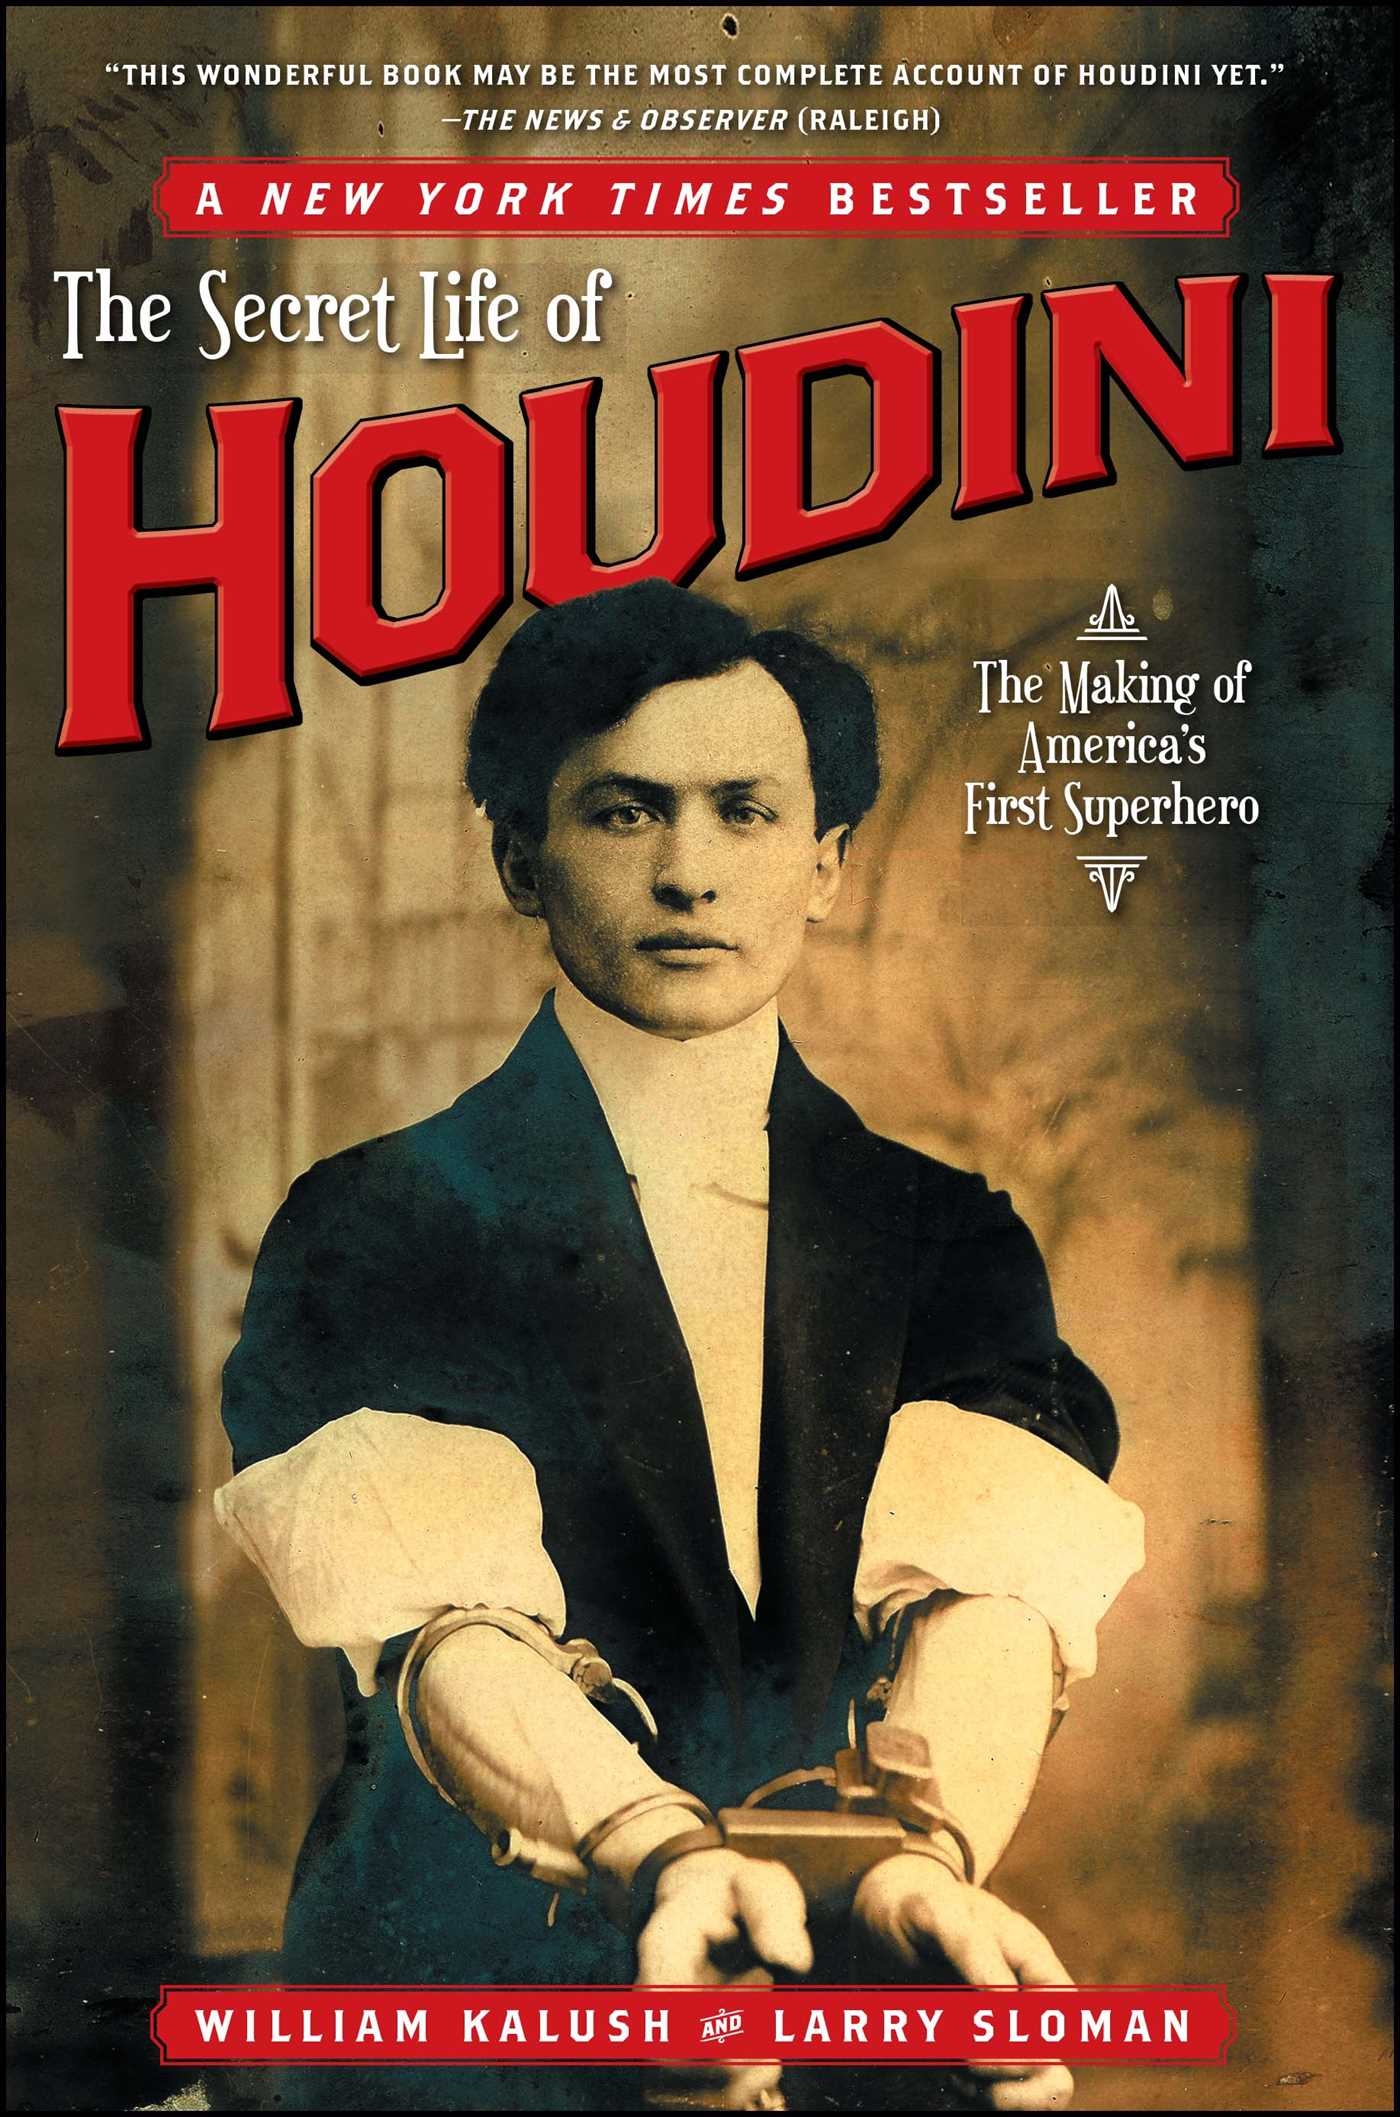 The-secret-life-of-houdini-9780743298506_hr